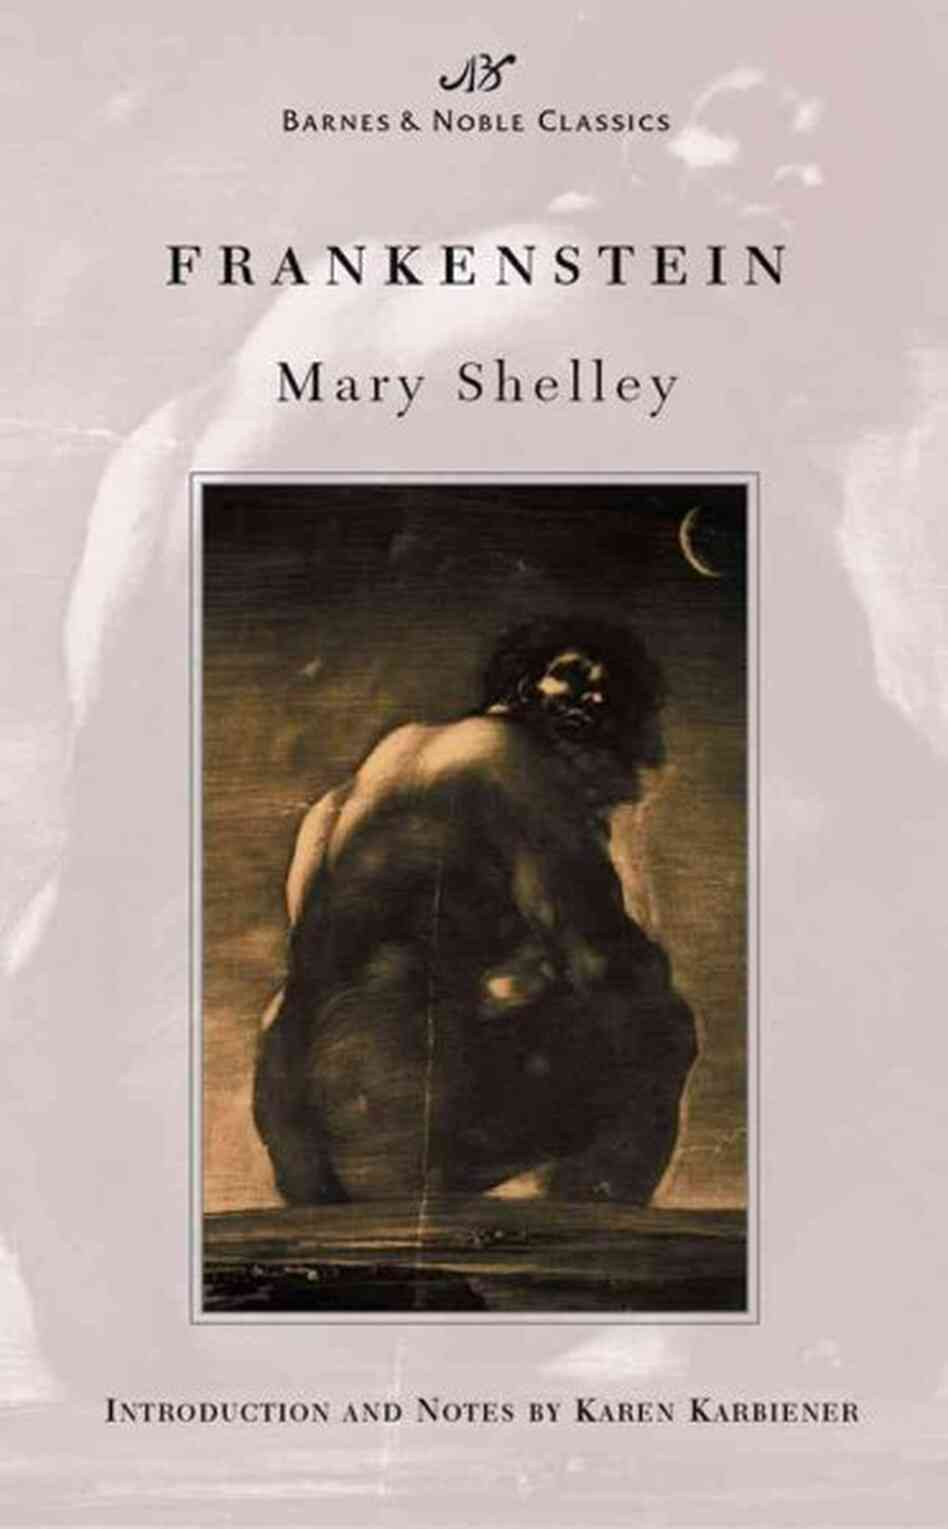 Why Did Mary Shelley Write Frankenstein?